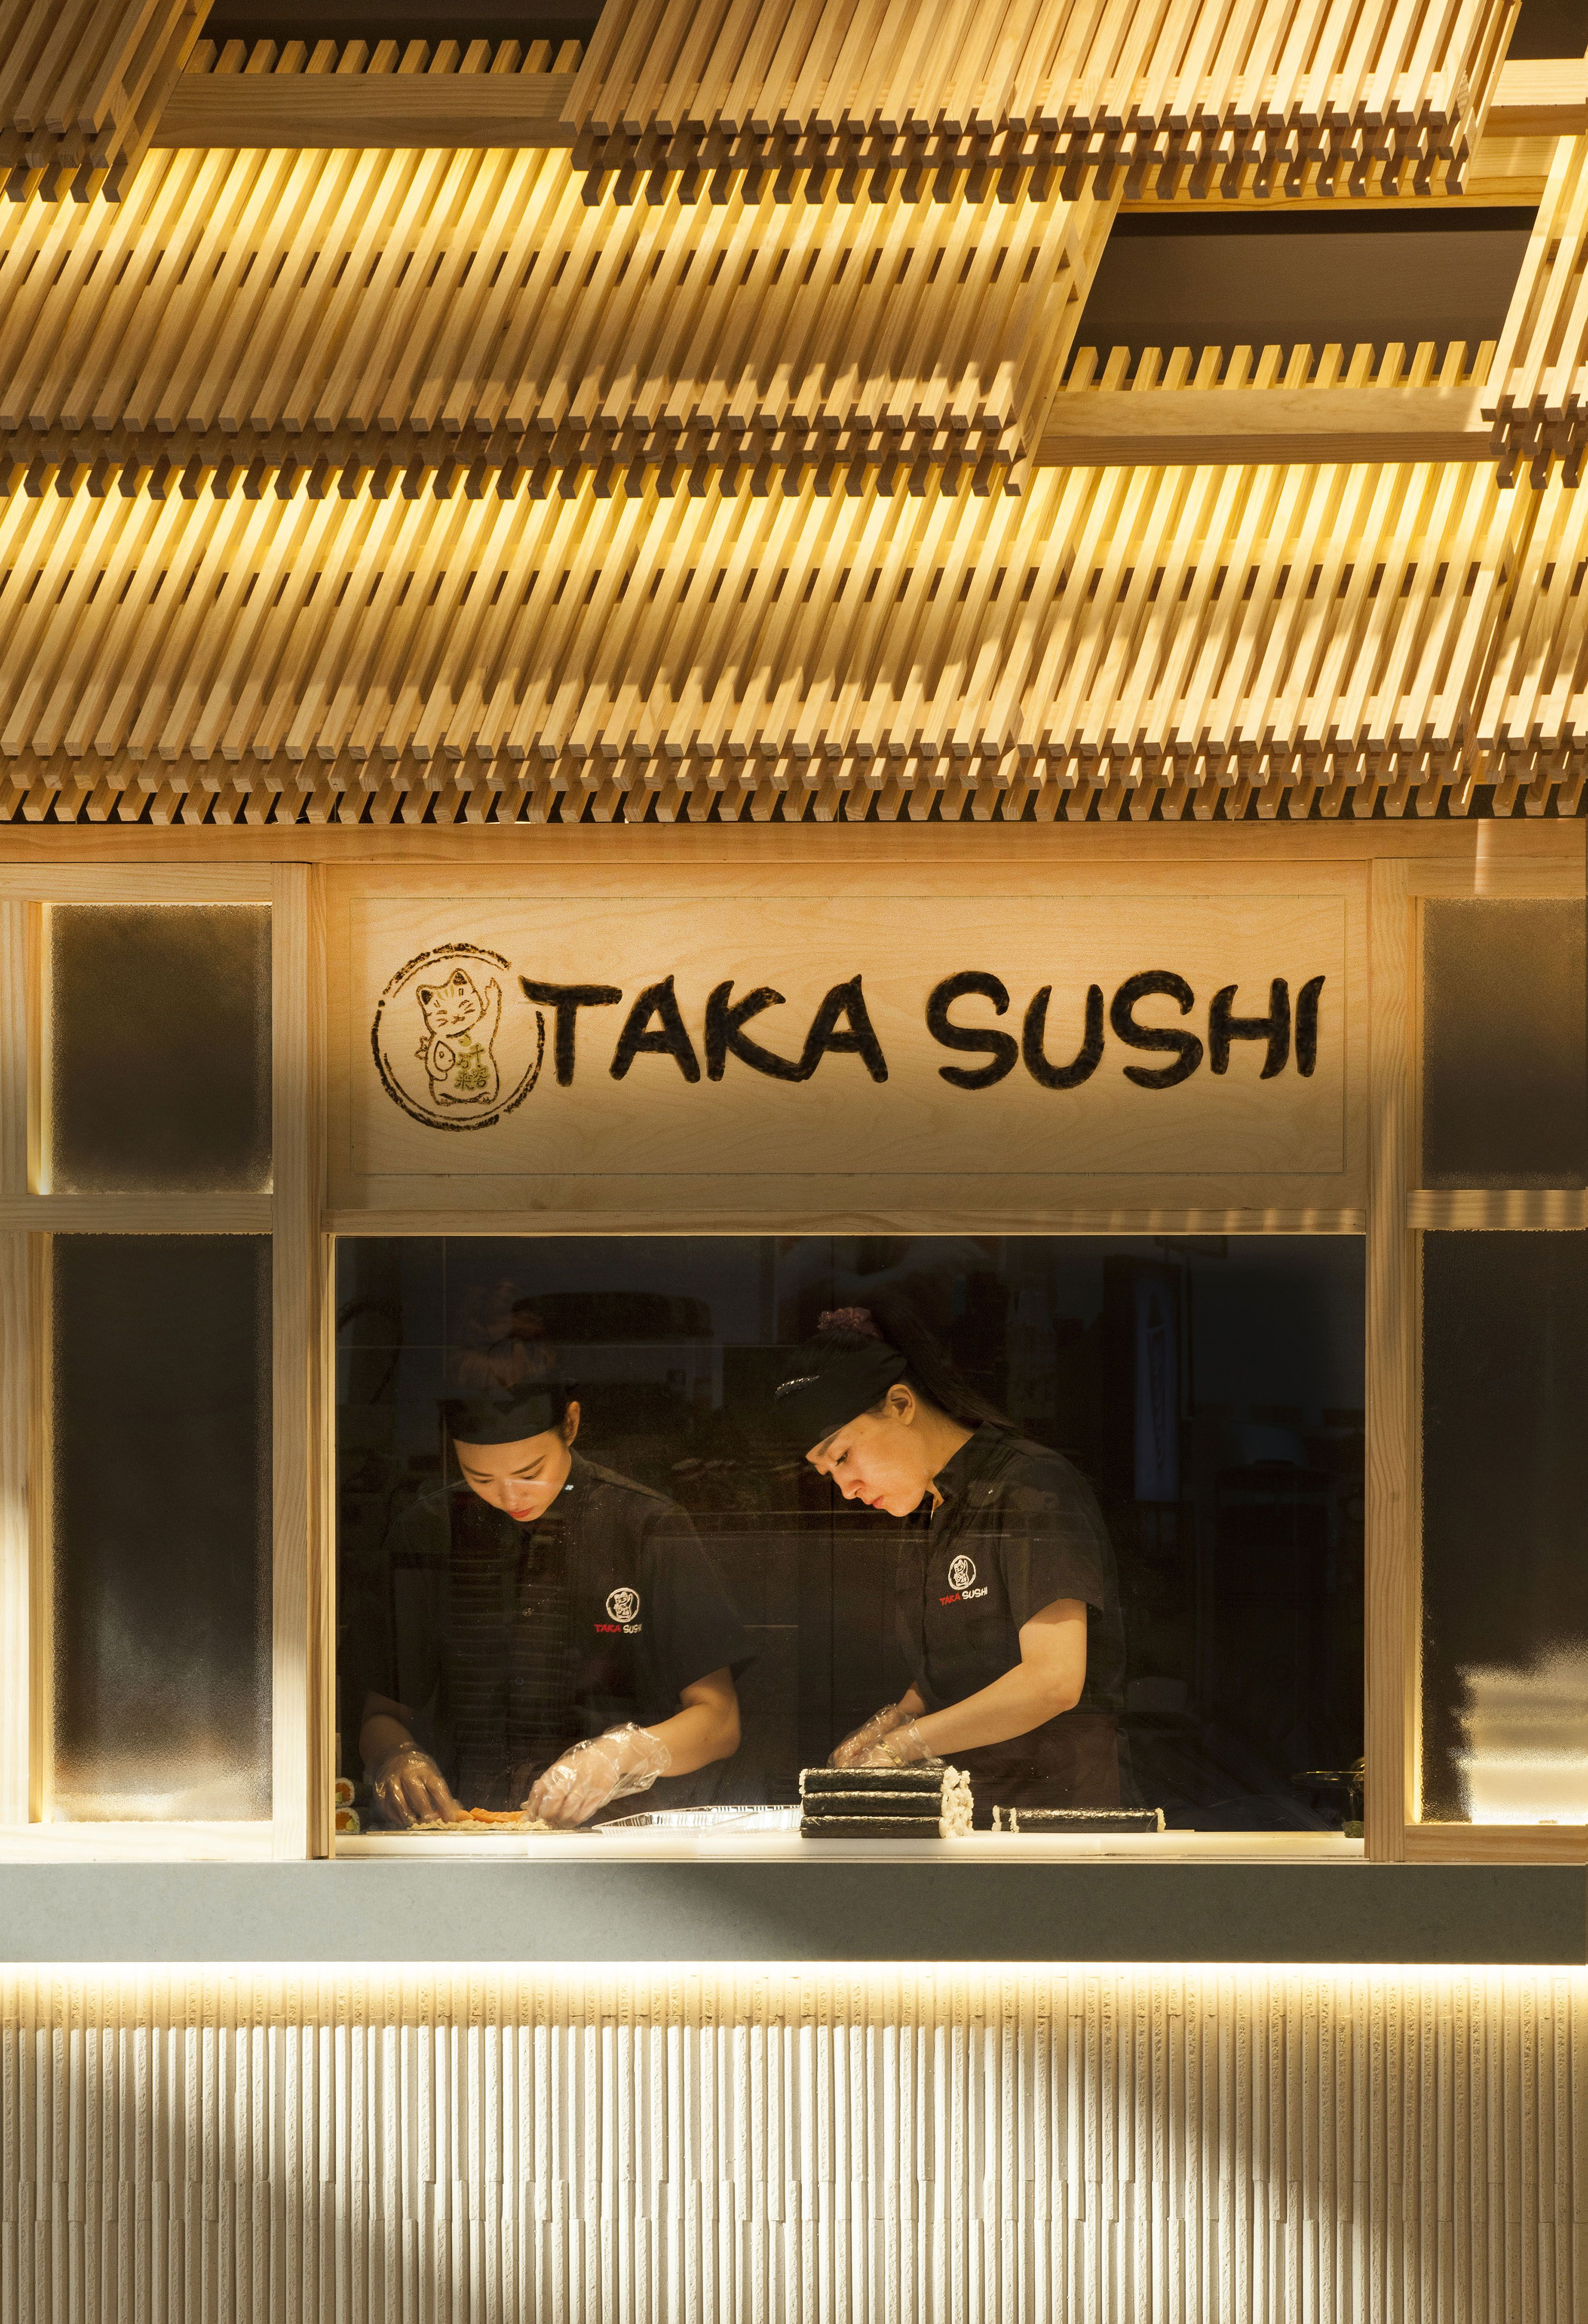 Check out our new Japanese inspired design for this popular Sushi\u2026 & Taka Sushi. Check out our new Japanese inspired design for this ...